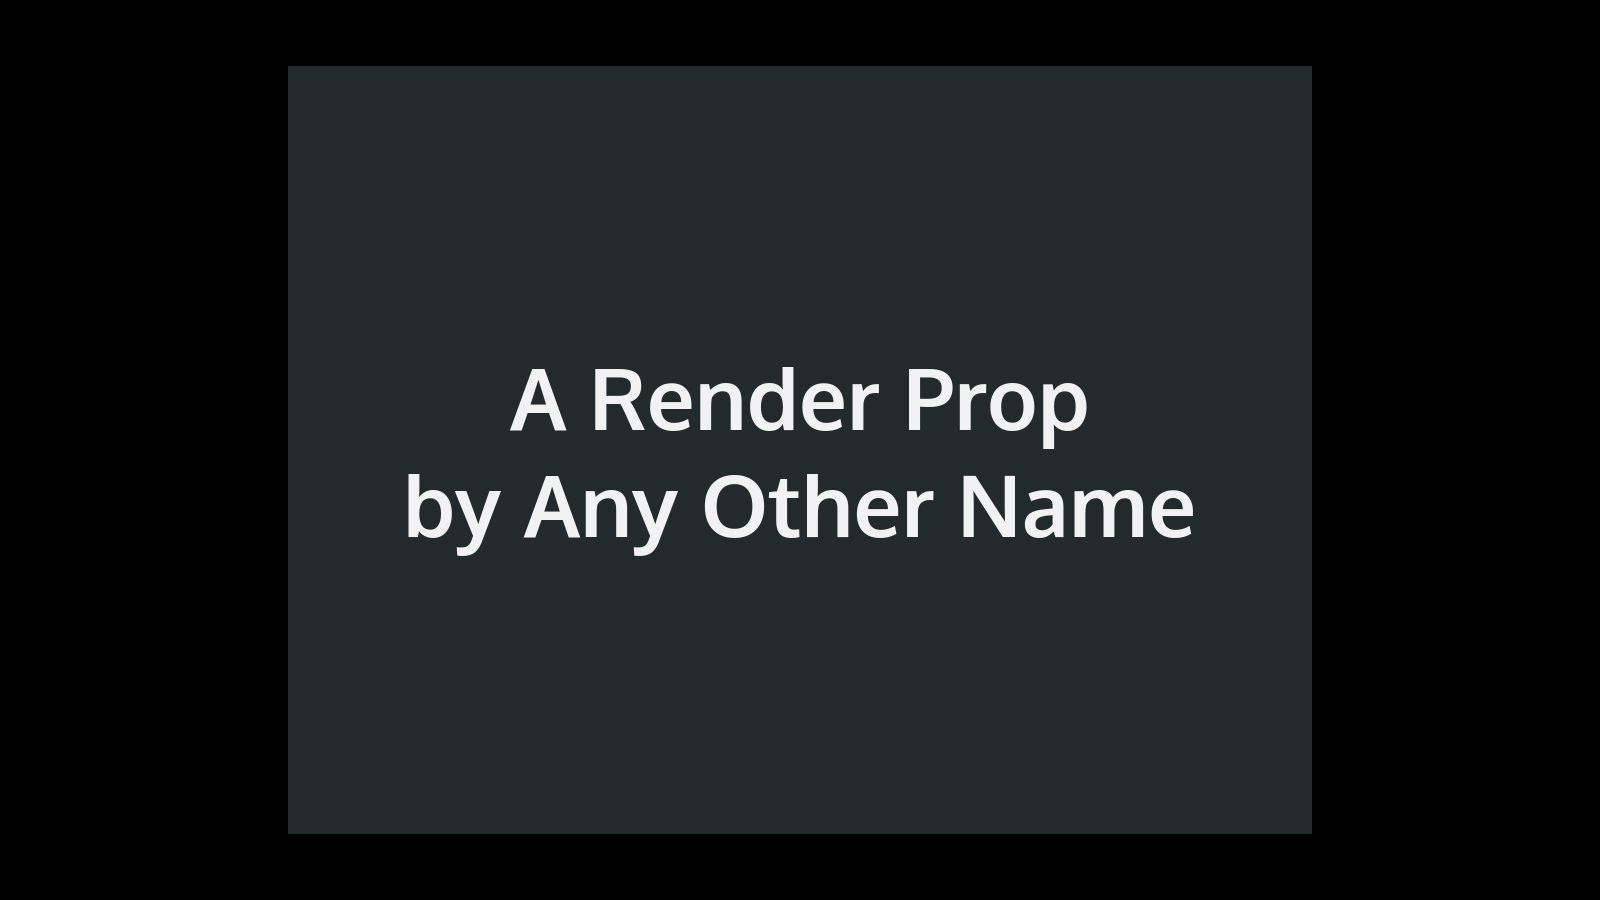 A Render Prop by Any Other Name